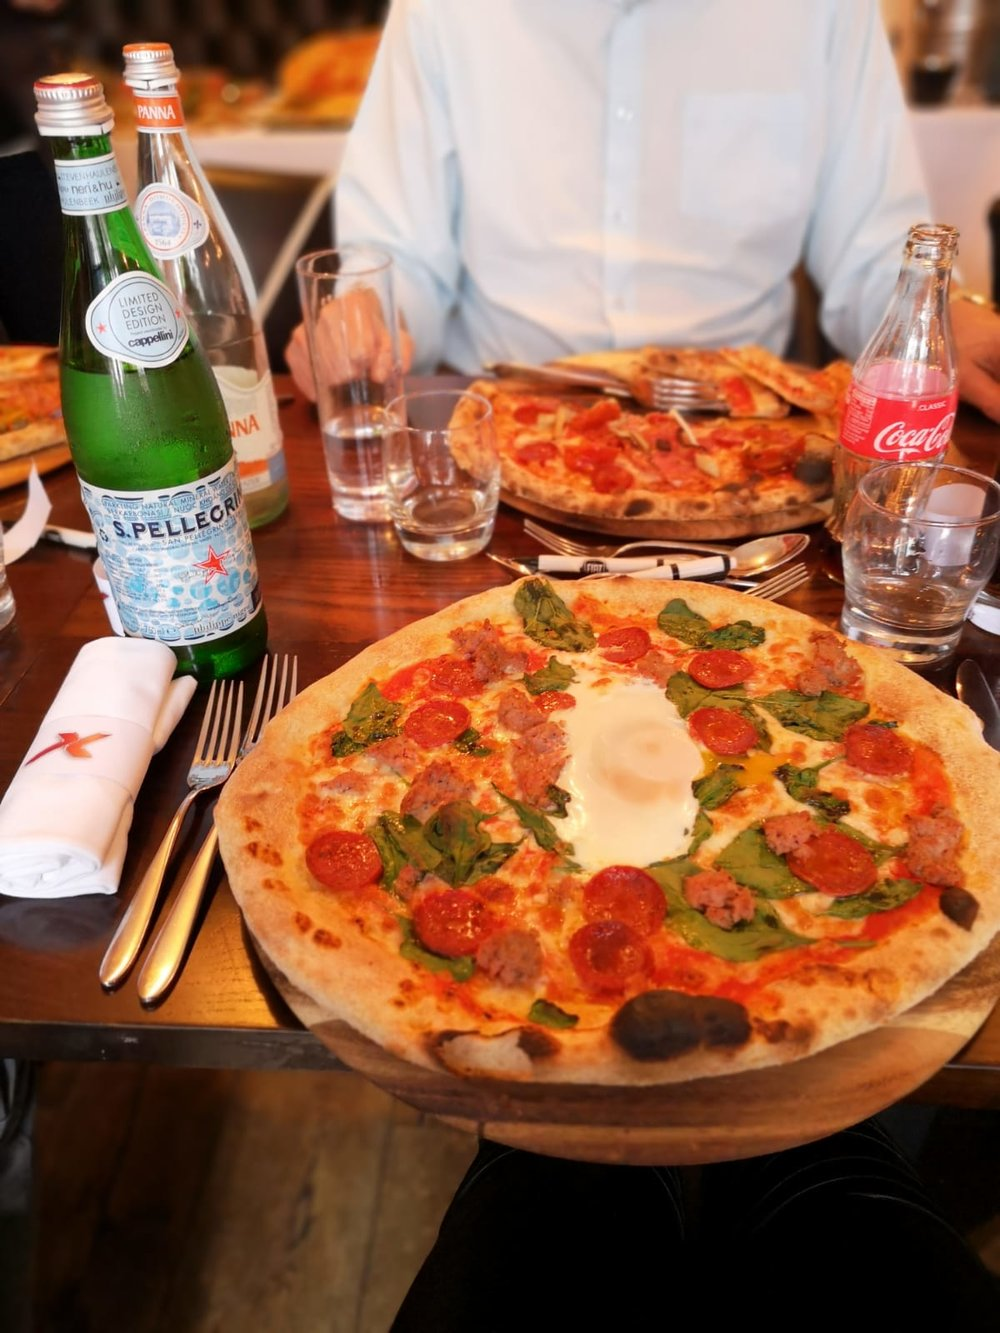 For me... the Fiorentina pizza with added pepperoni is my go-to choice!